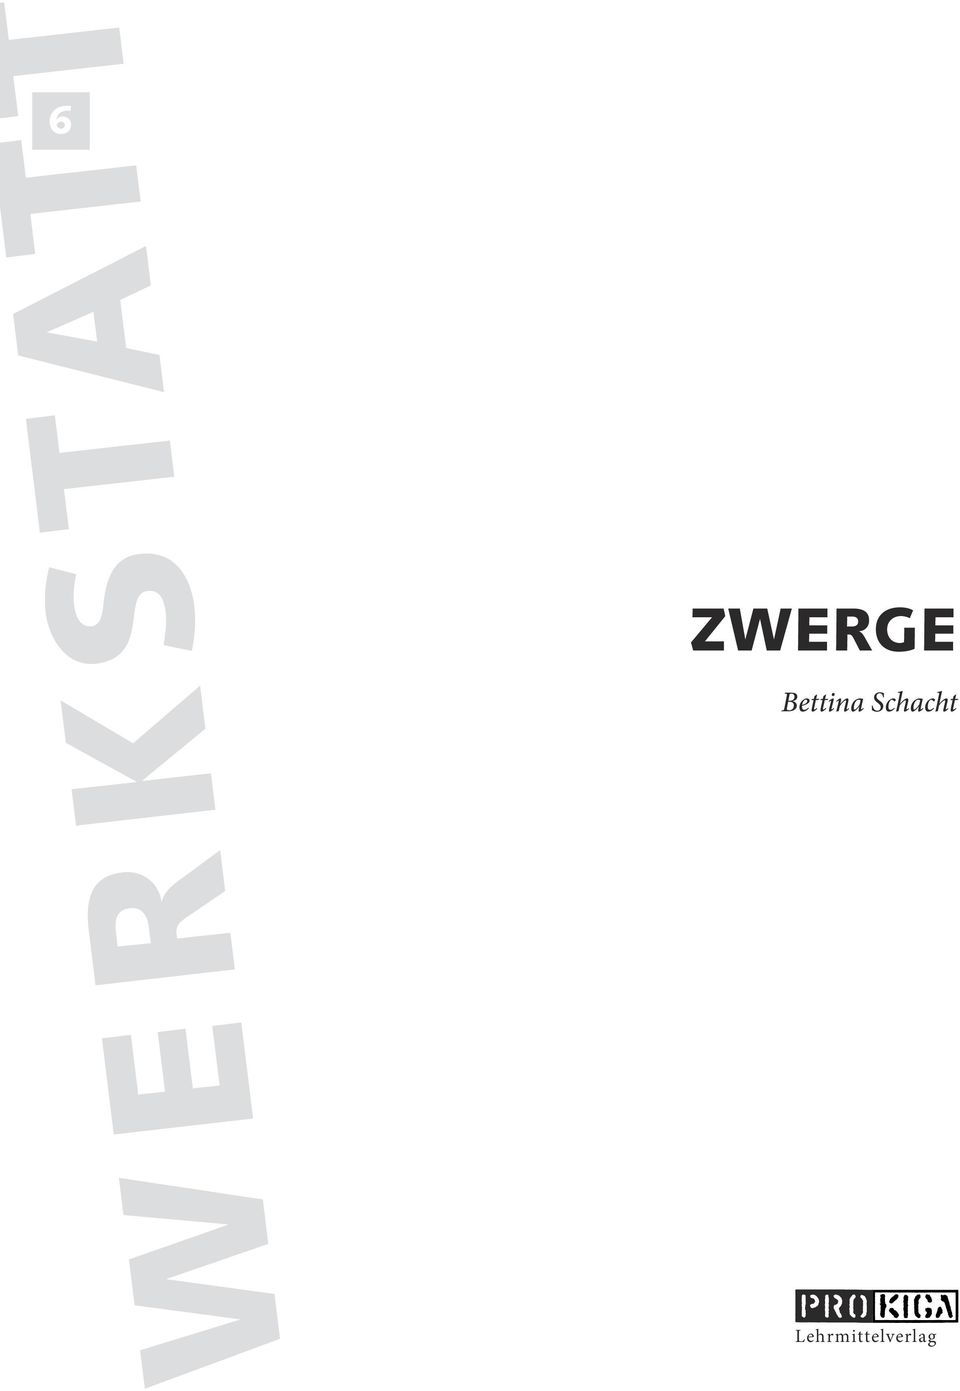 ZWERGE. Bettina Schacht. Lehrmittelverlag - PDF